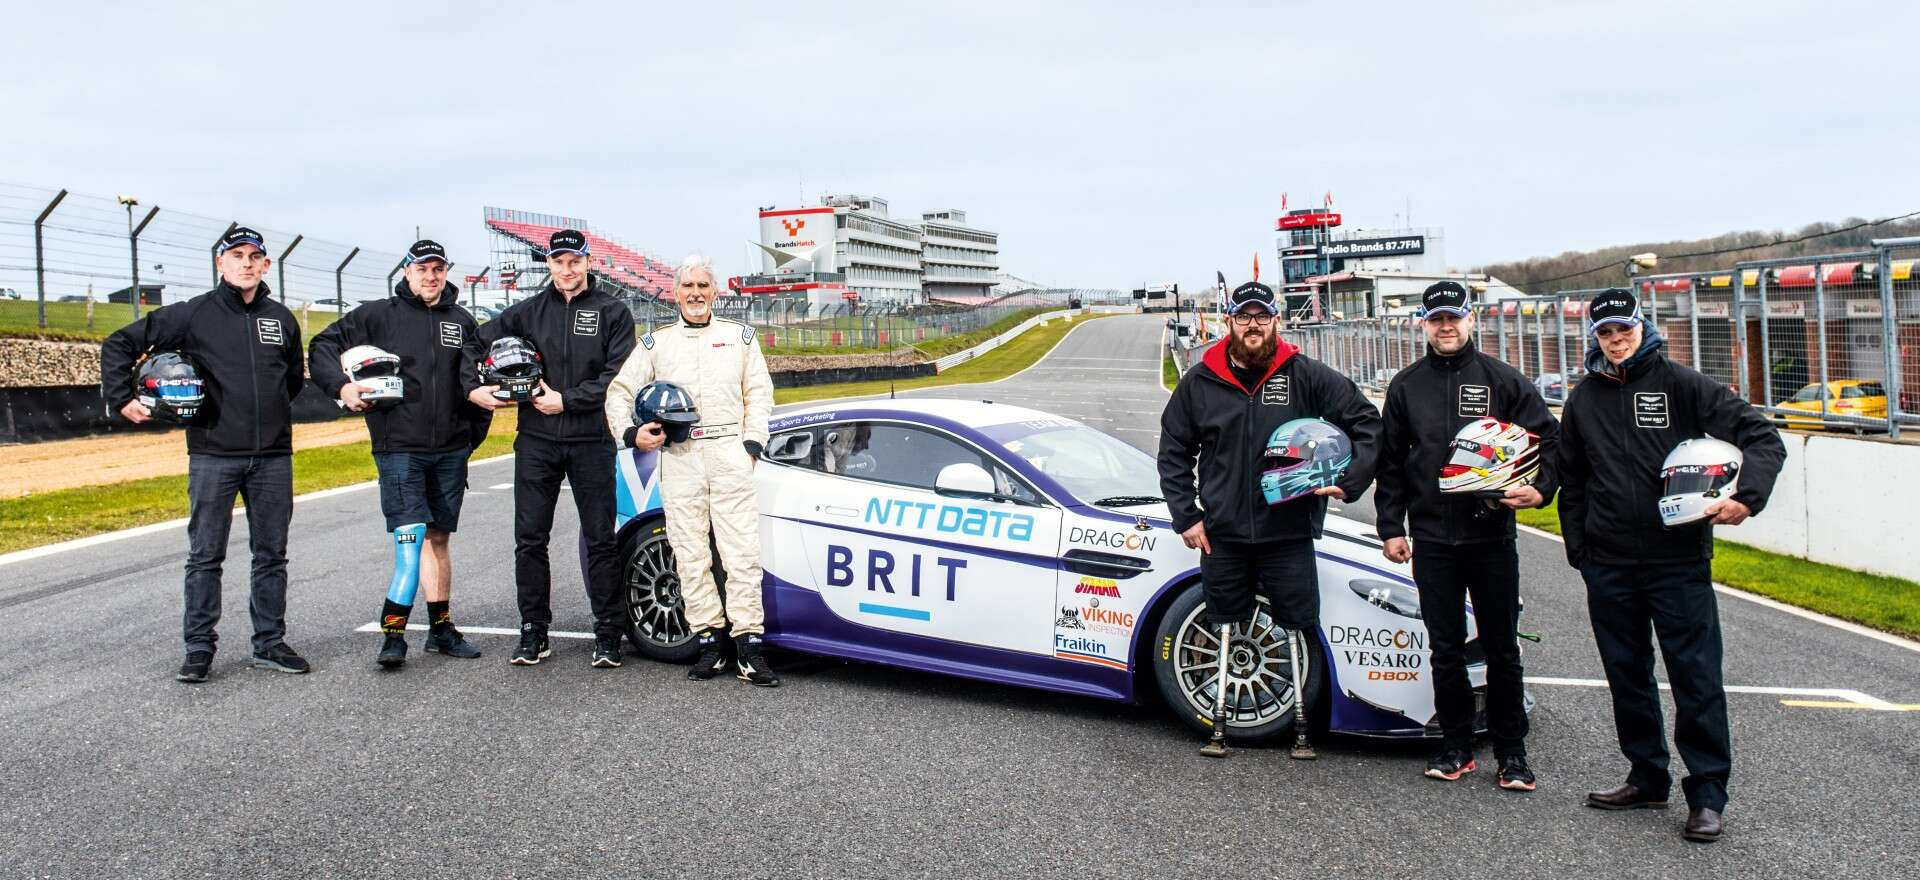 Team BRIT with sports car on the racetrack